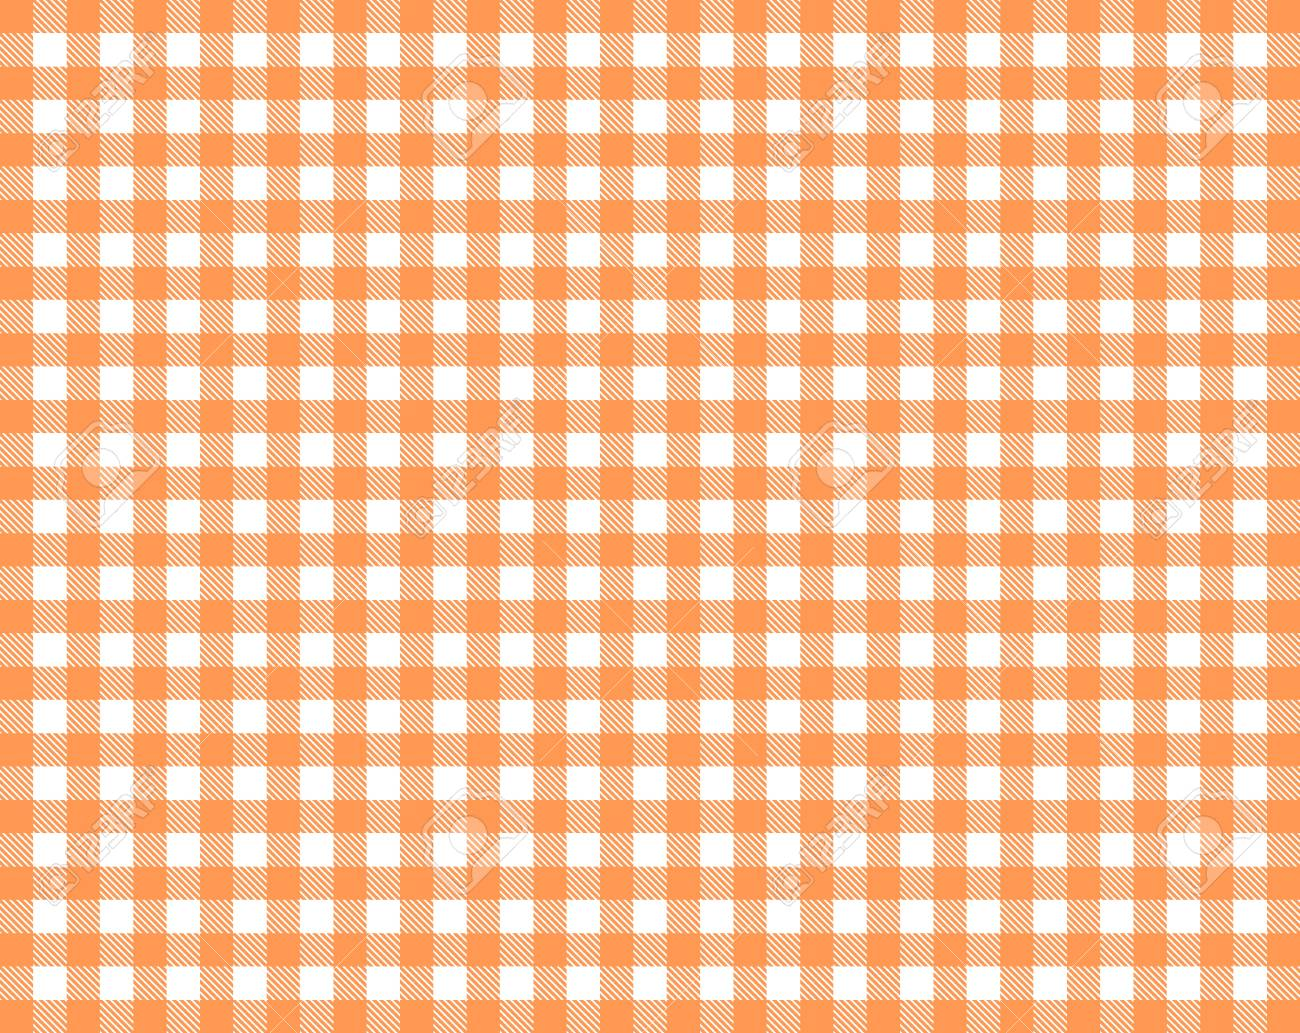 Tablecloth background texture checkered red orange and white - 121479156